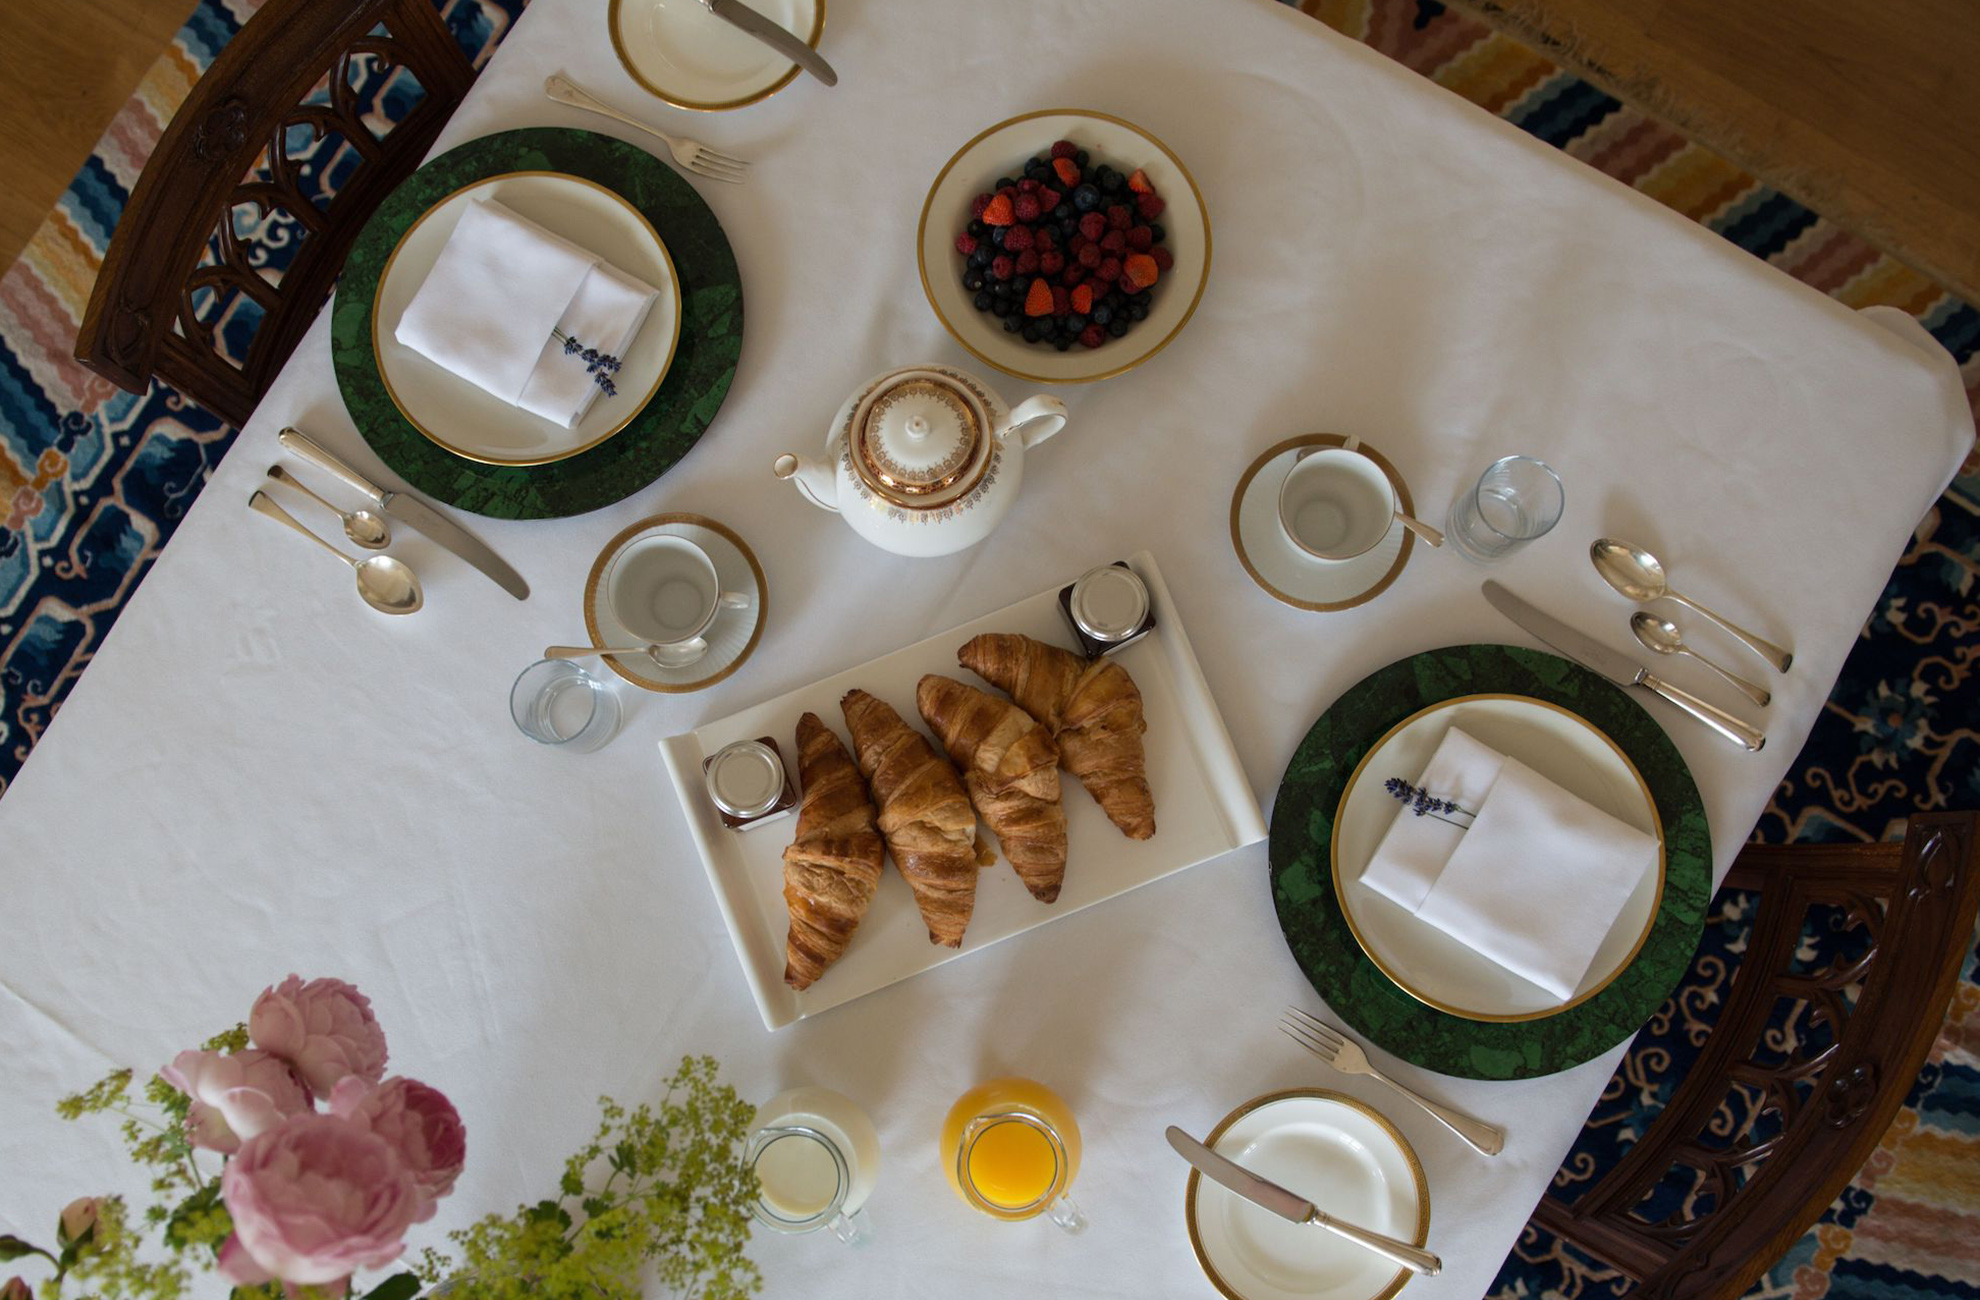 Enjoy a delicious breakfast during your luxury break at Combermere Abbey